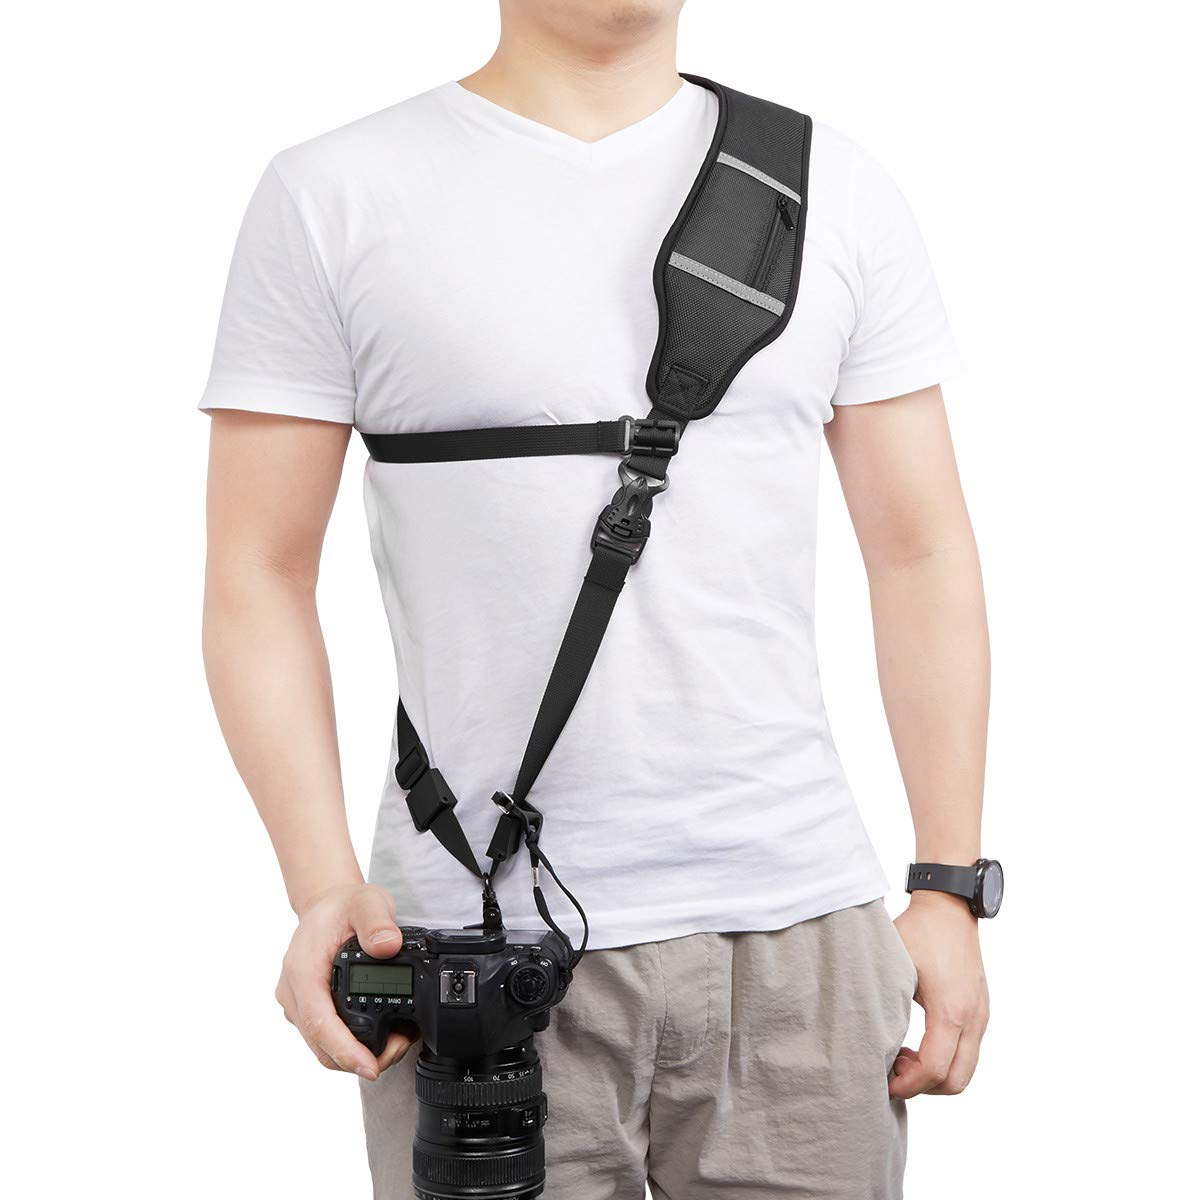 Powerextra Camera Shoulder Neck Strap with Quick Release and Safety Tether Compatible with Nikon Sony Olympus Pentax, fujifilm, Panasonic Canon SLR DSLR